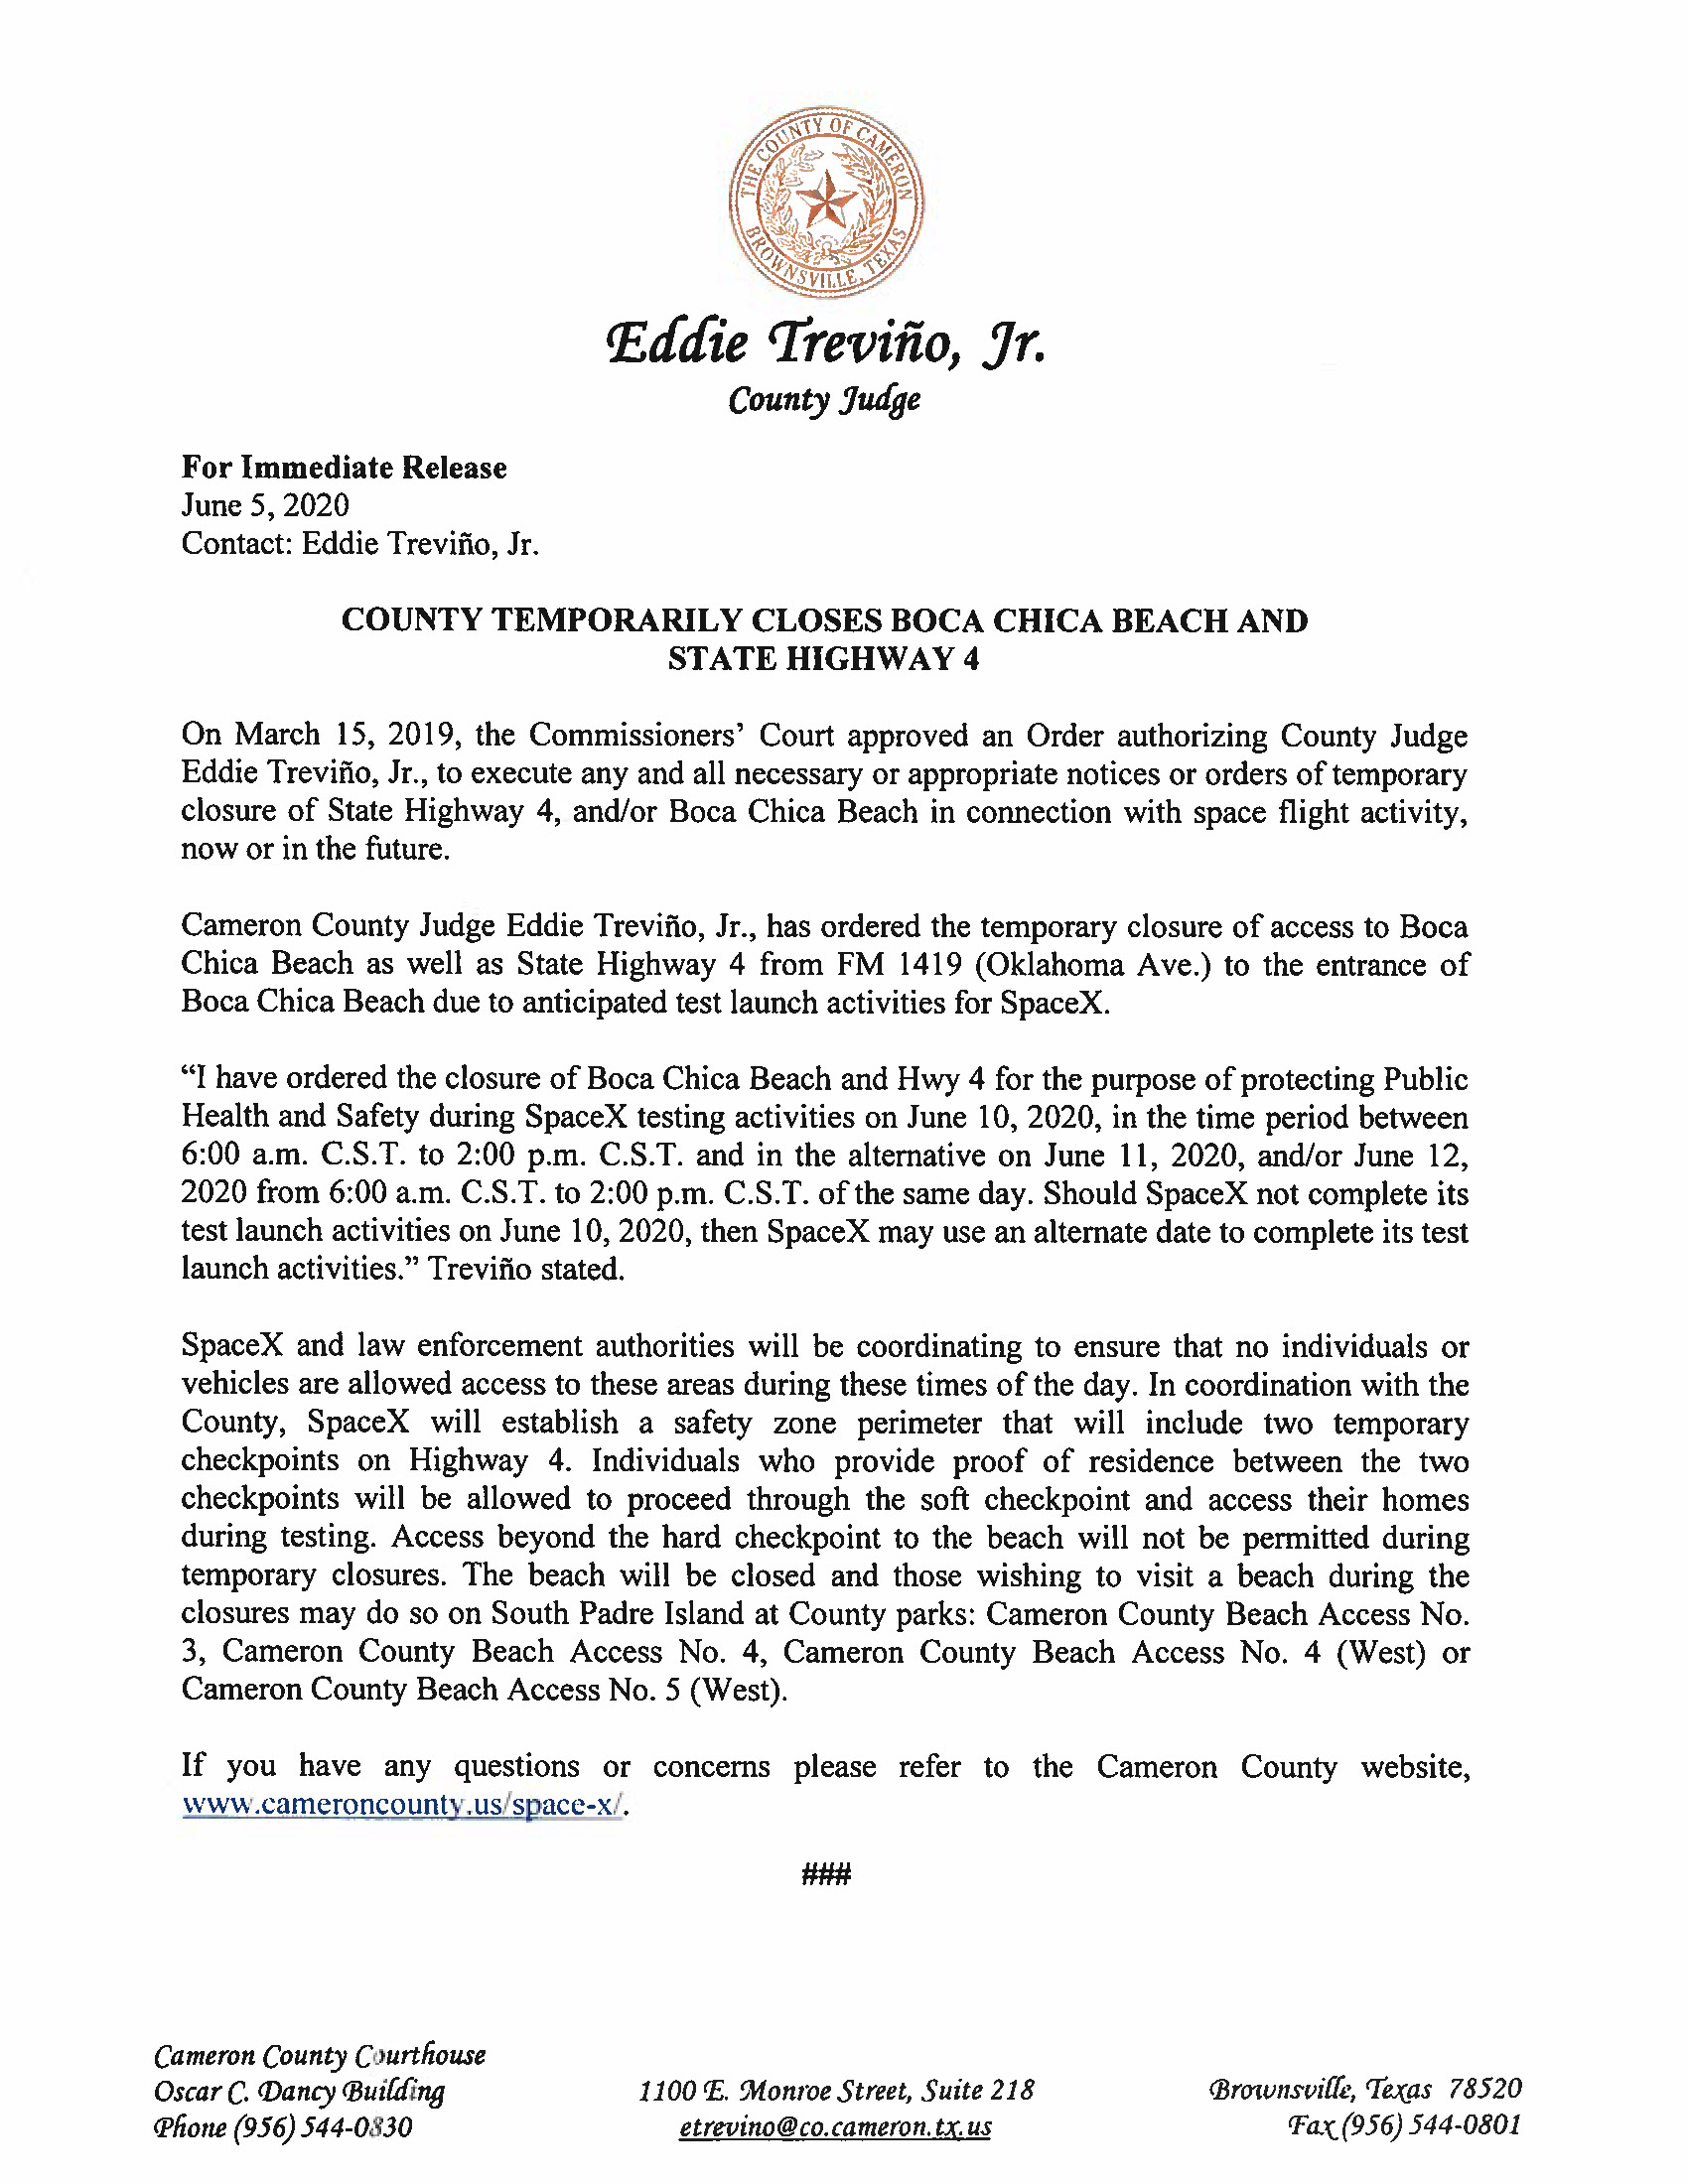 Press Release In English And Spanish.06.10.20 Page 1